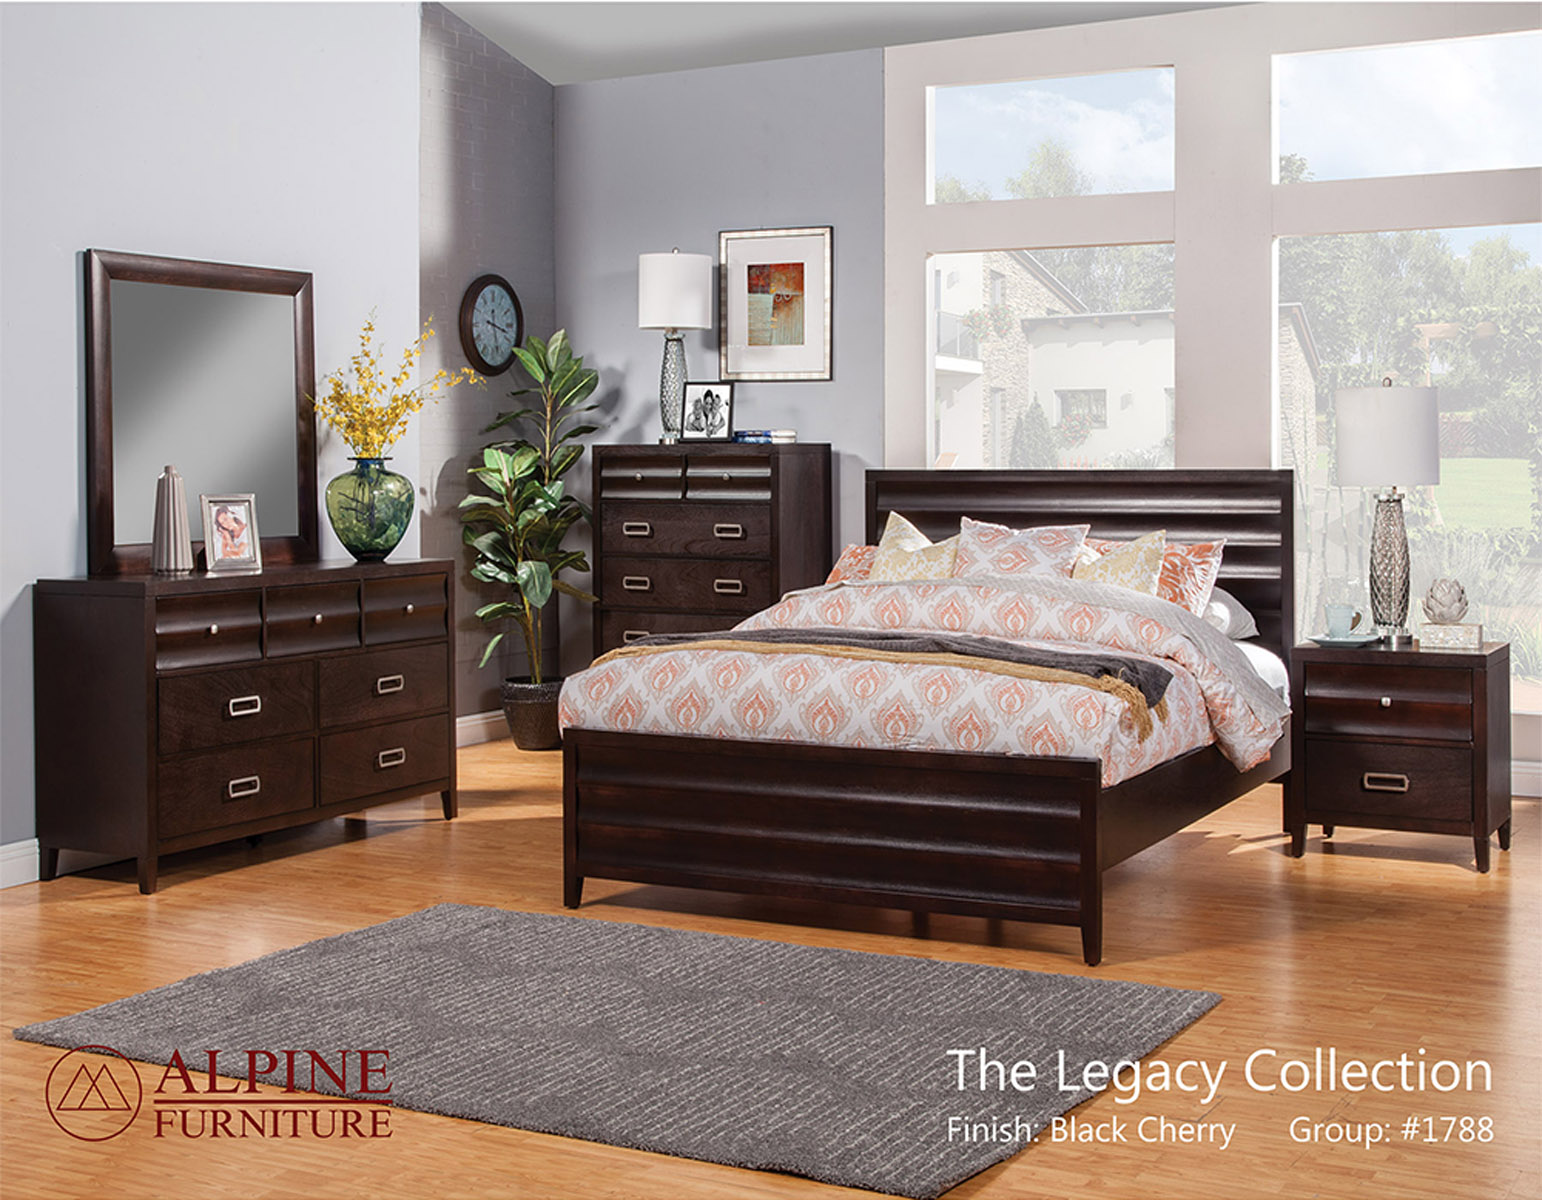 Image of: Alpine Furniture Legacy 4 Piece Panel Bedroom Set In Black Cherry